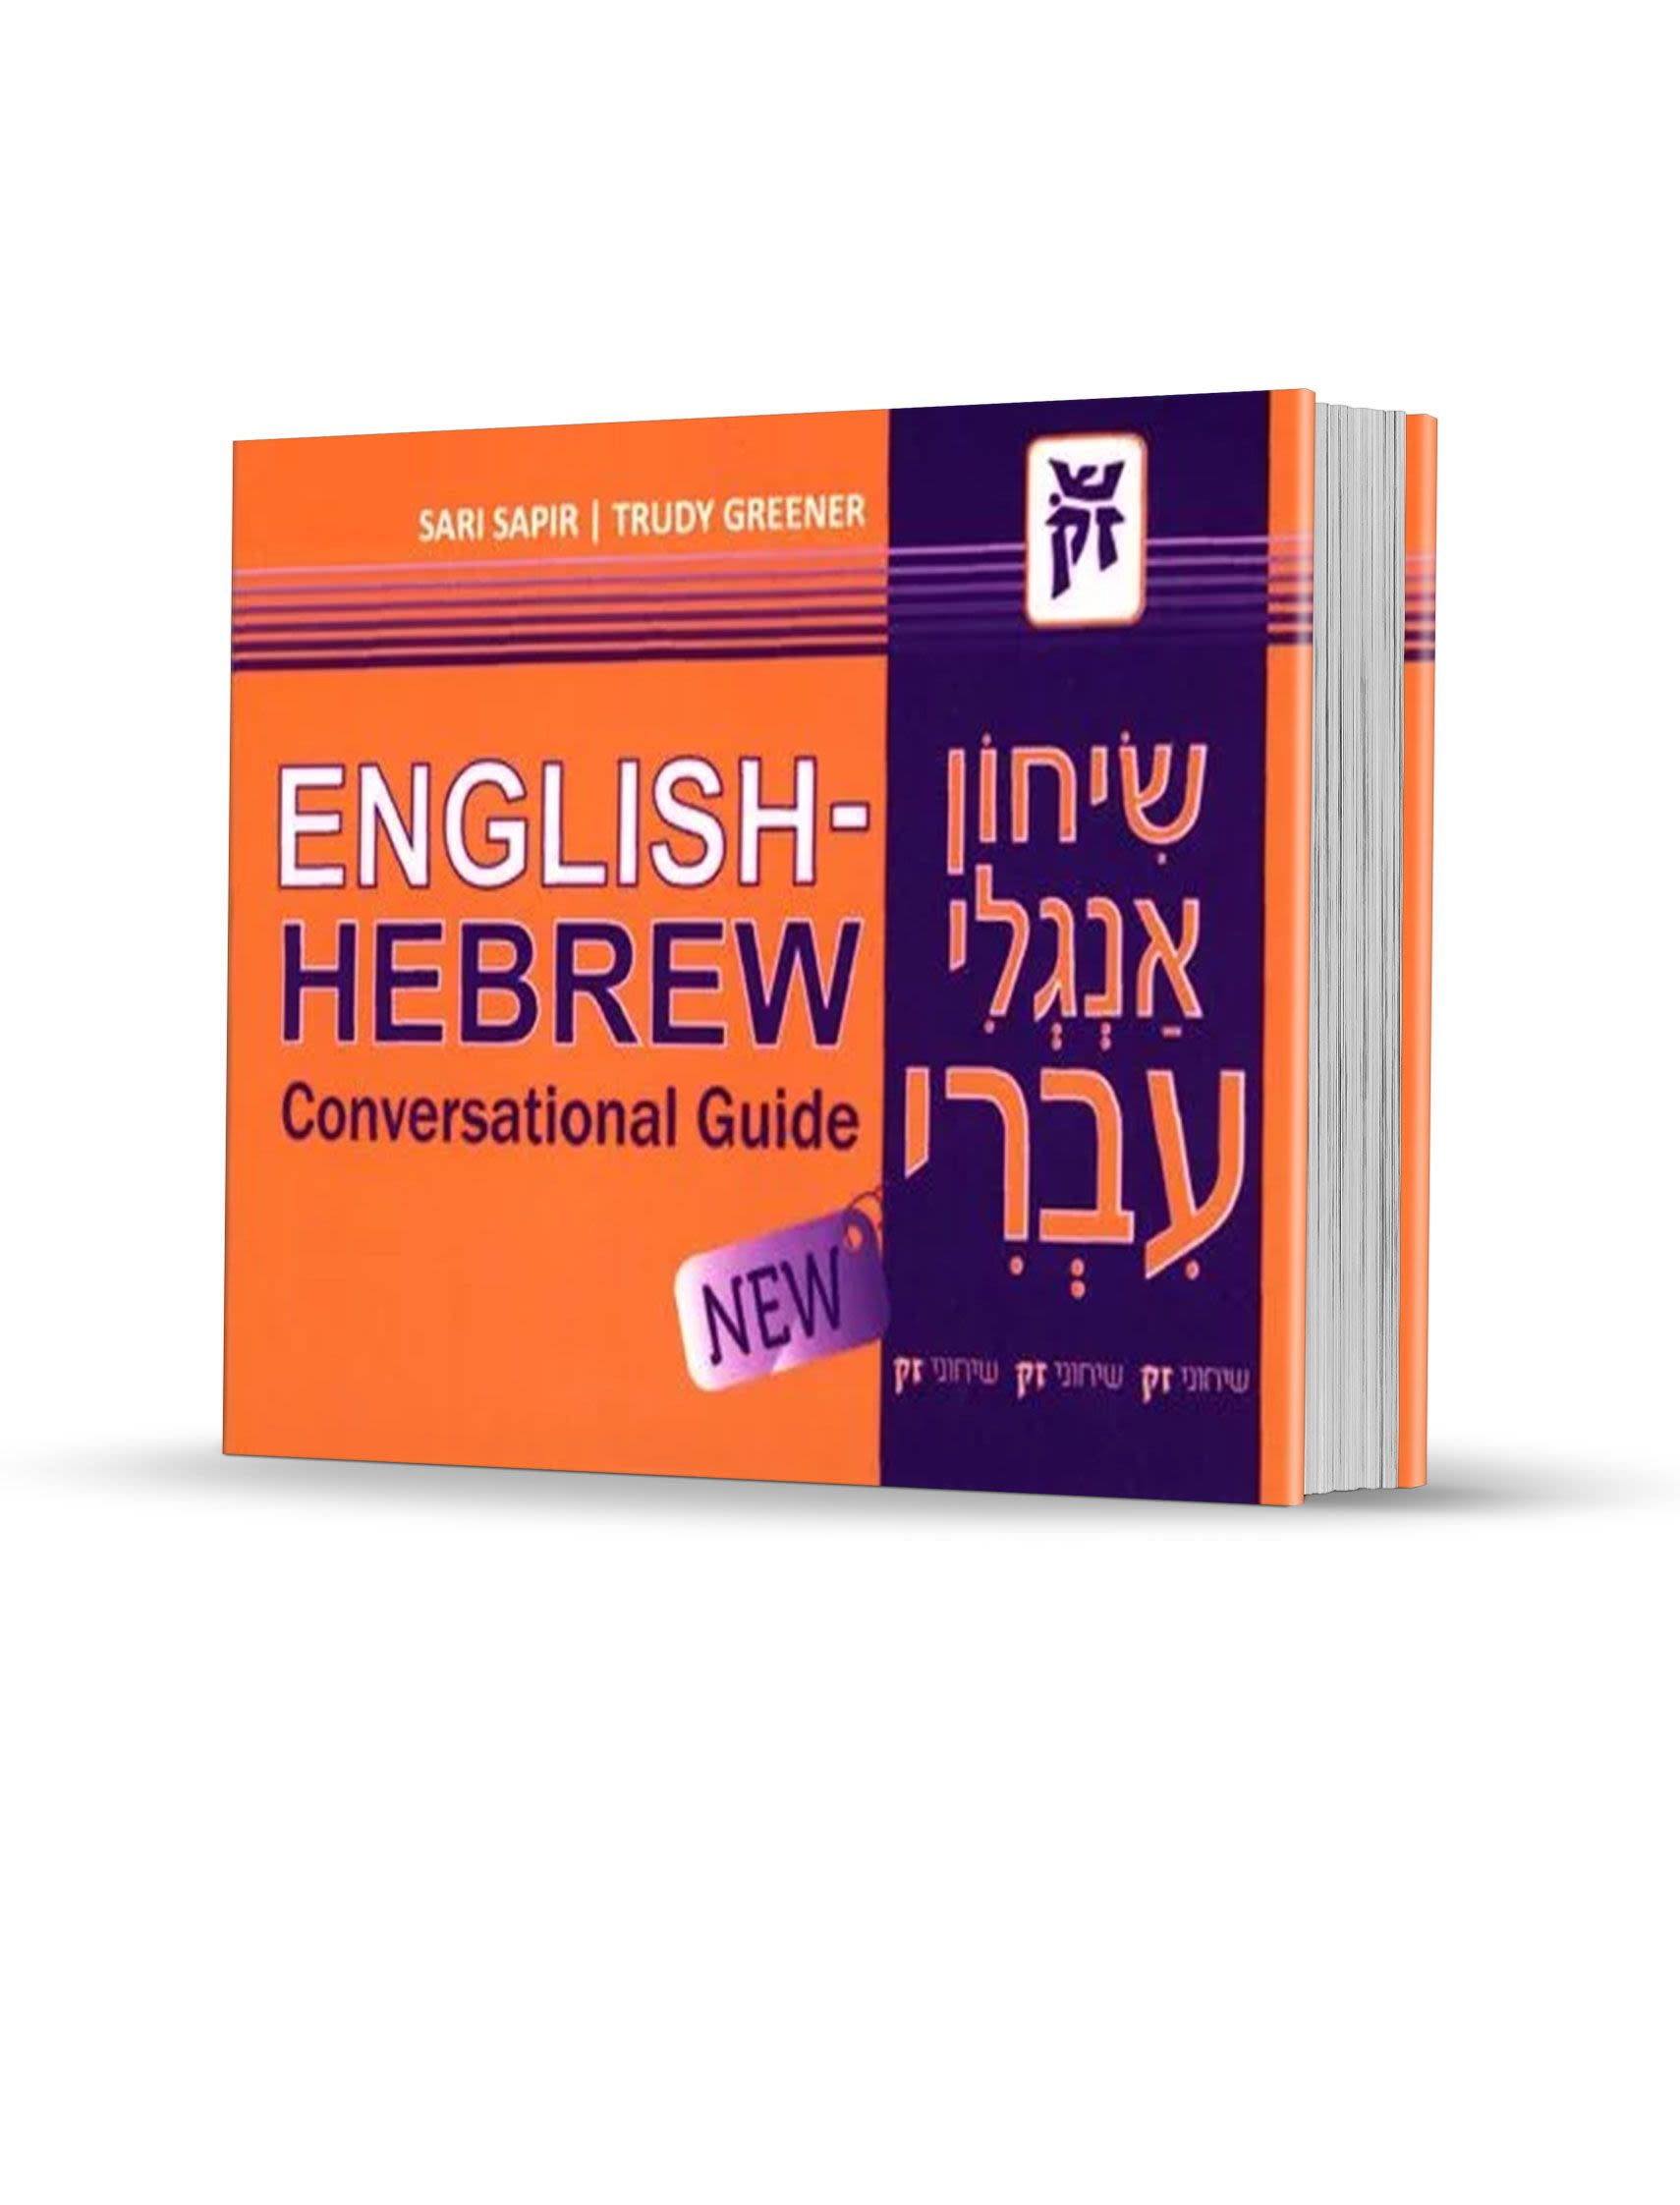 English-Hebrew Conversational Guide